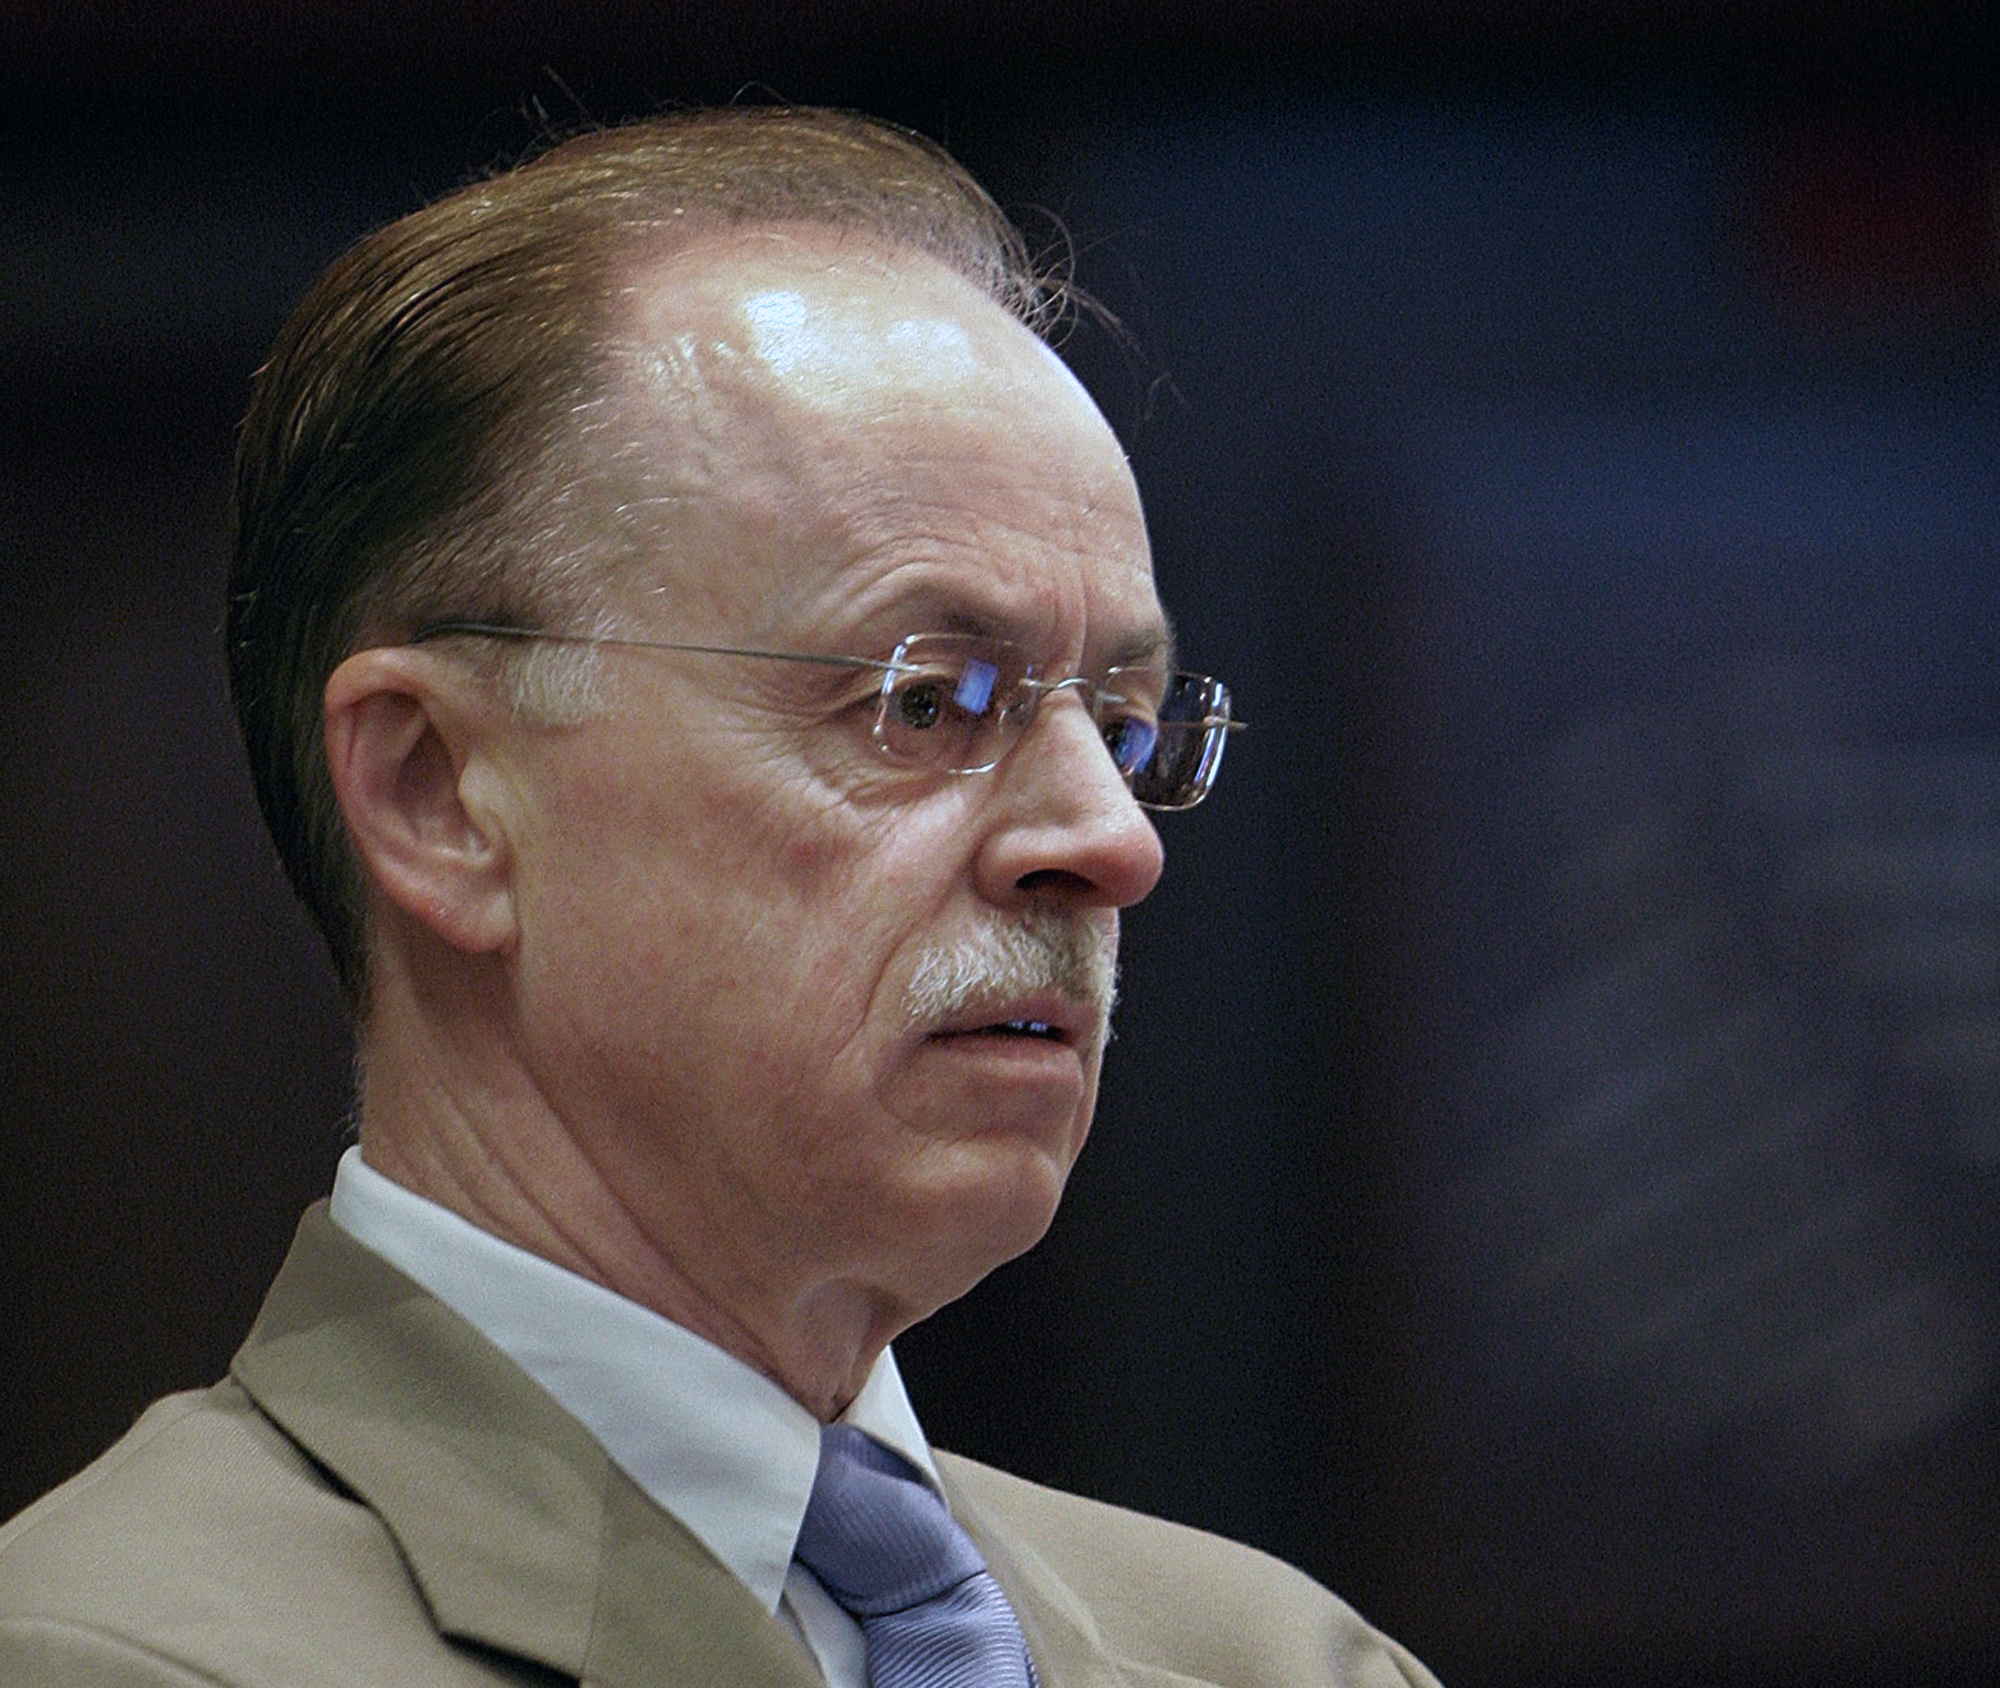 Mapes at the Illinois State Capitol in Springfield on Oct. 4, 2007. (AP Photo/Seth Perlman)